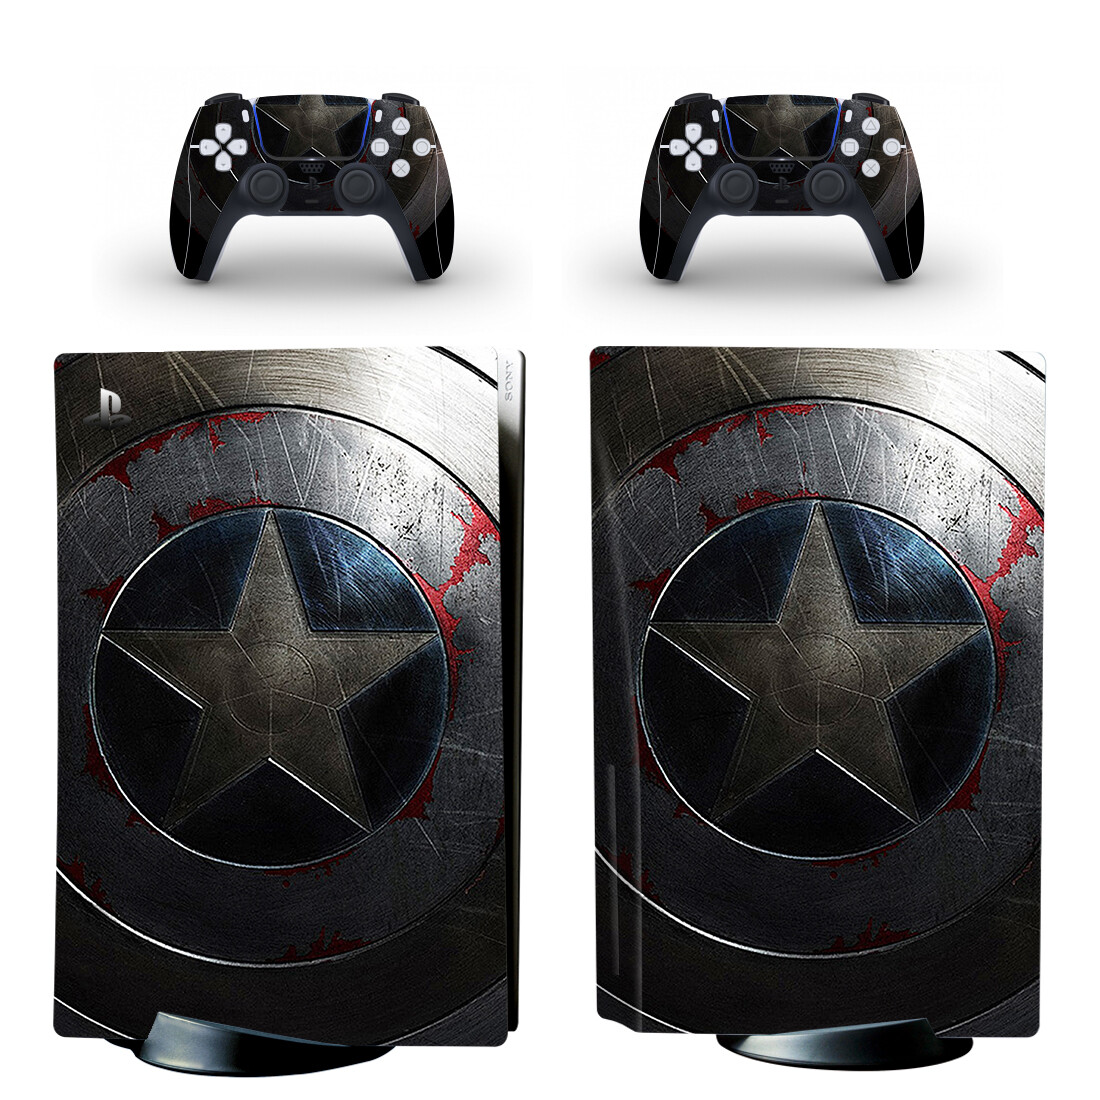 New Film PS5 Standard Disc Edition Skin Sticker Decal Cover for PlayStation 5 Console and 2 Controllers PS5 Skin Sticker 1